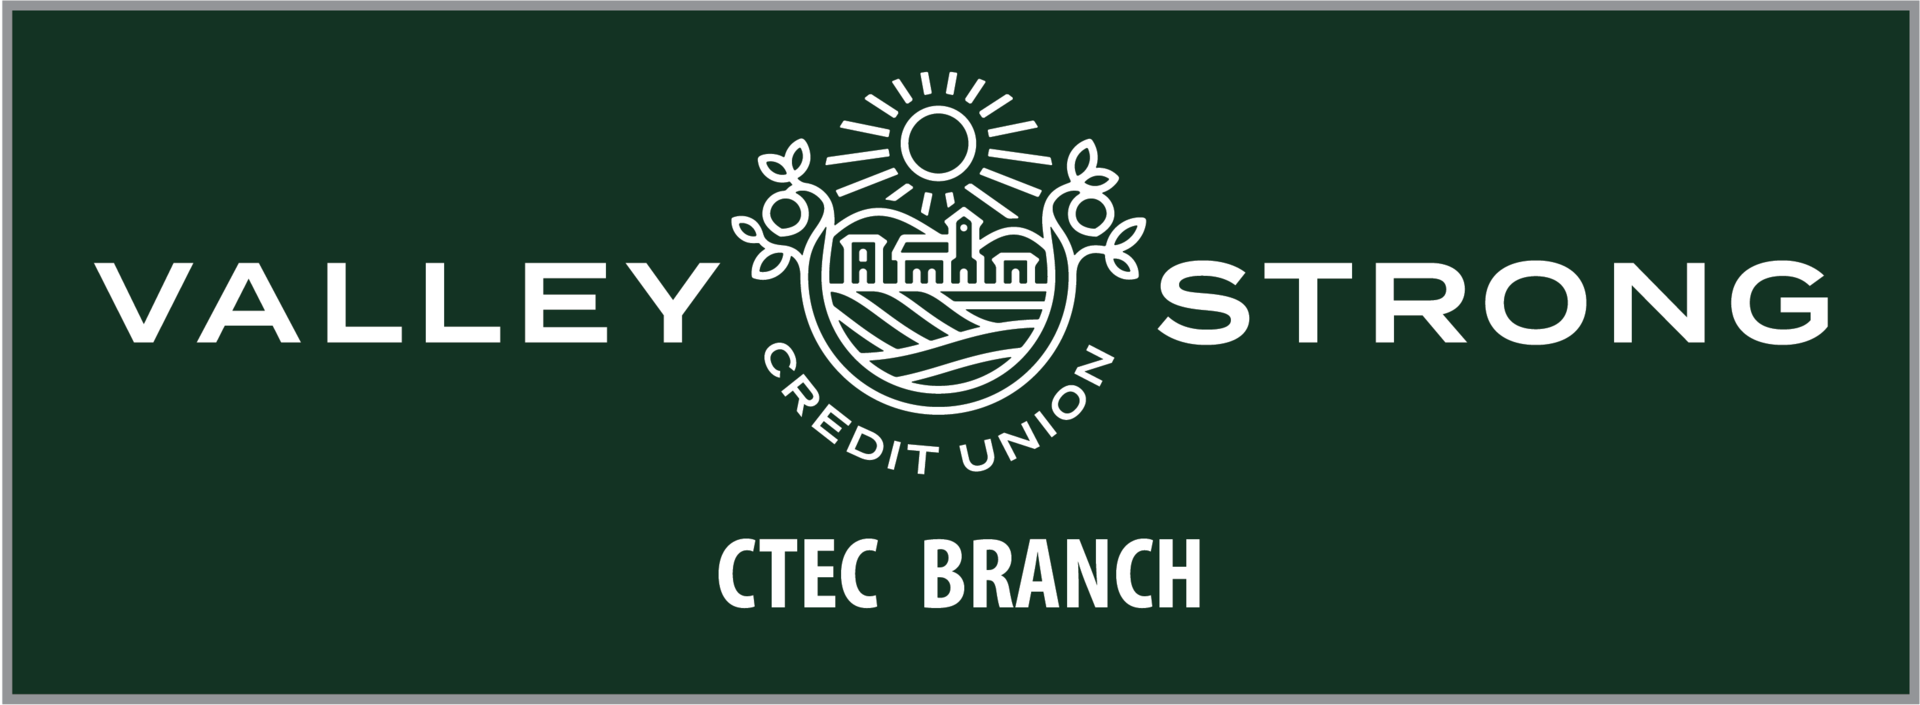 Valley Strong CTEC branch